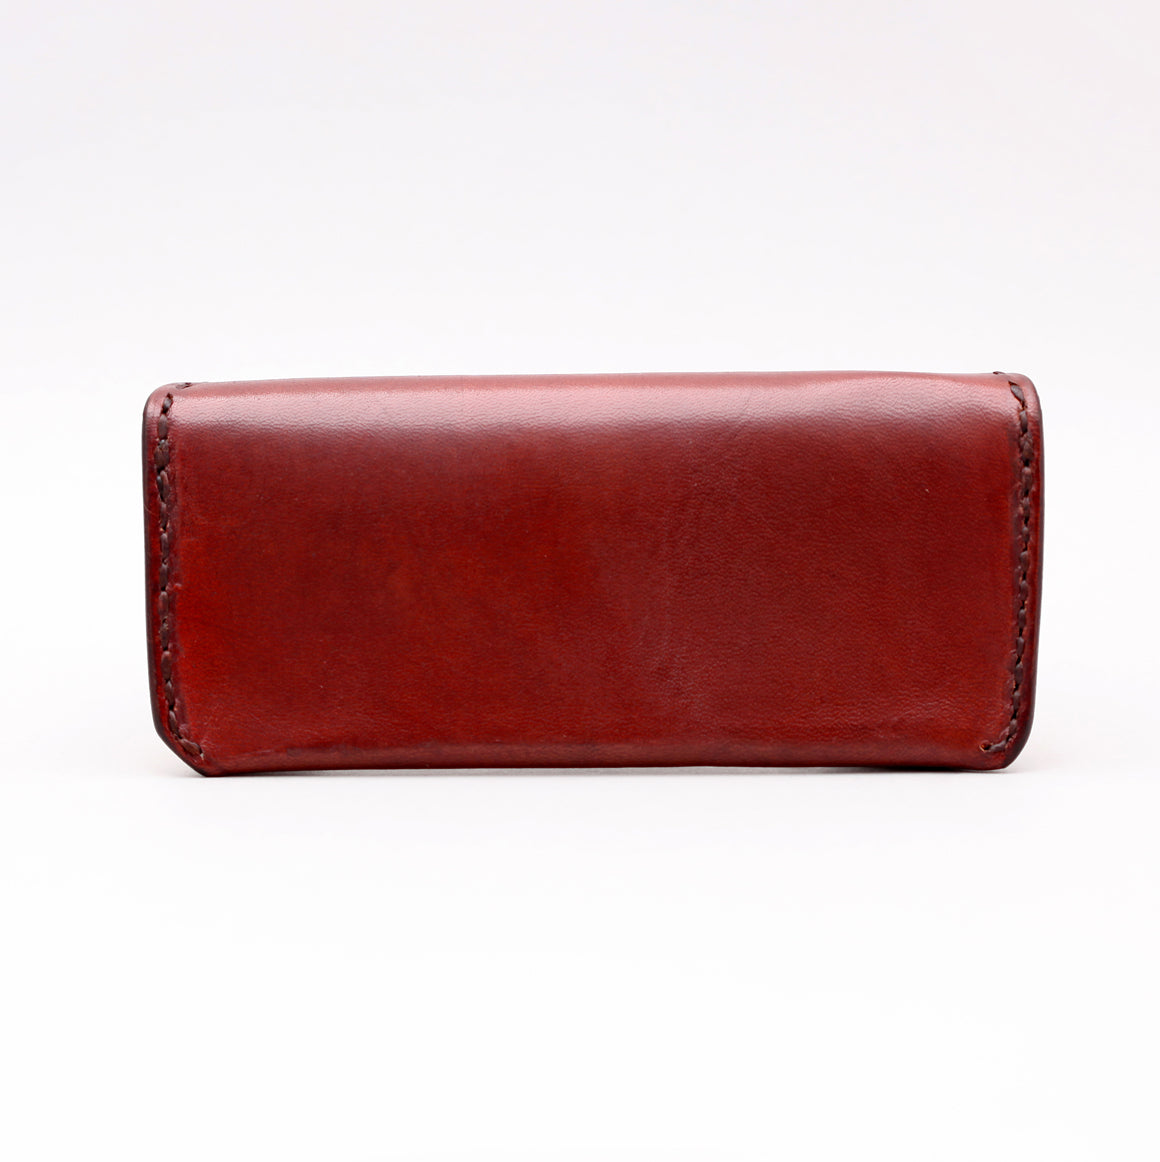 RECTANGULAR SUNGLASSES CASE IN DARK BROWN LEATHER W TOP STITCH DETAILS